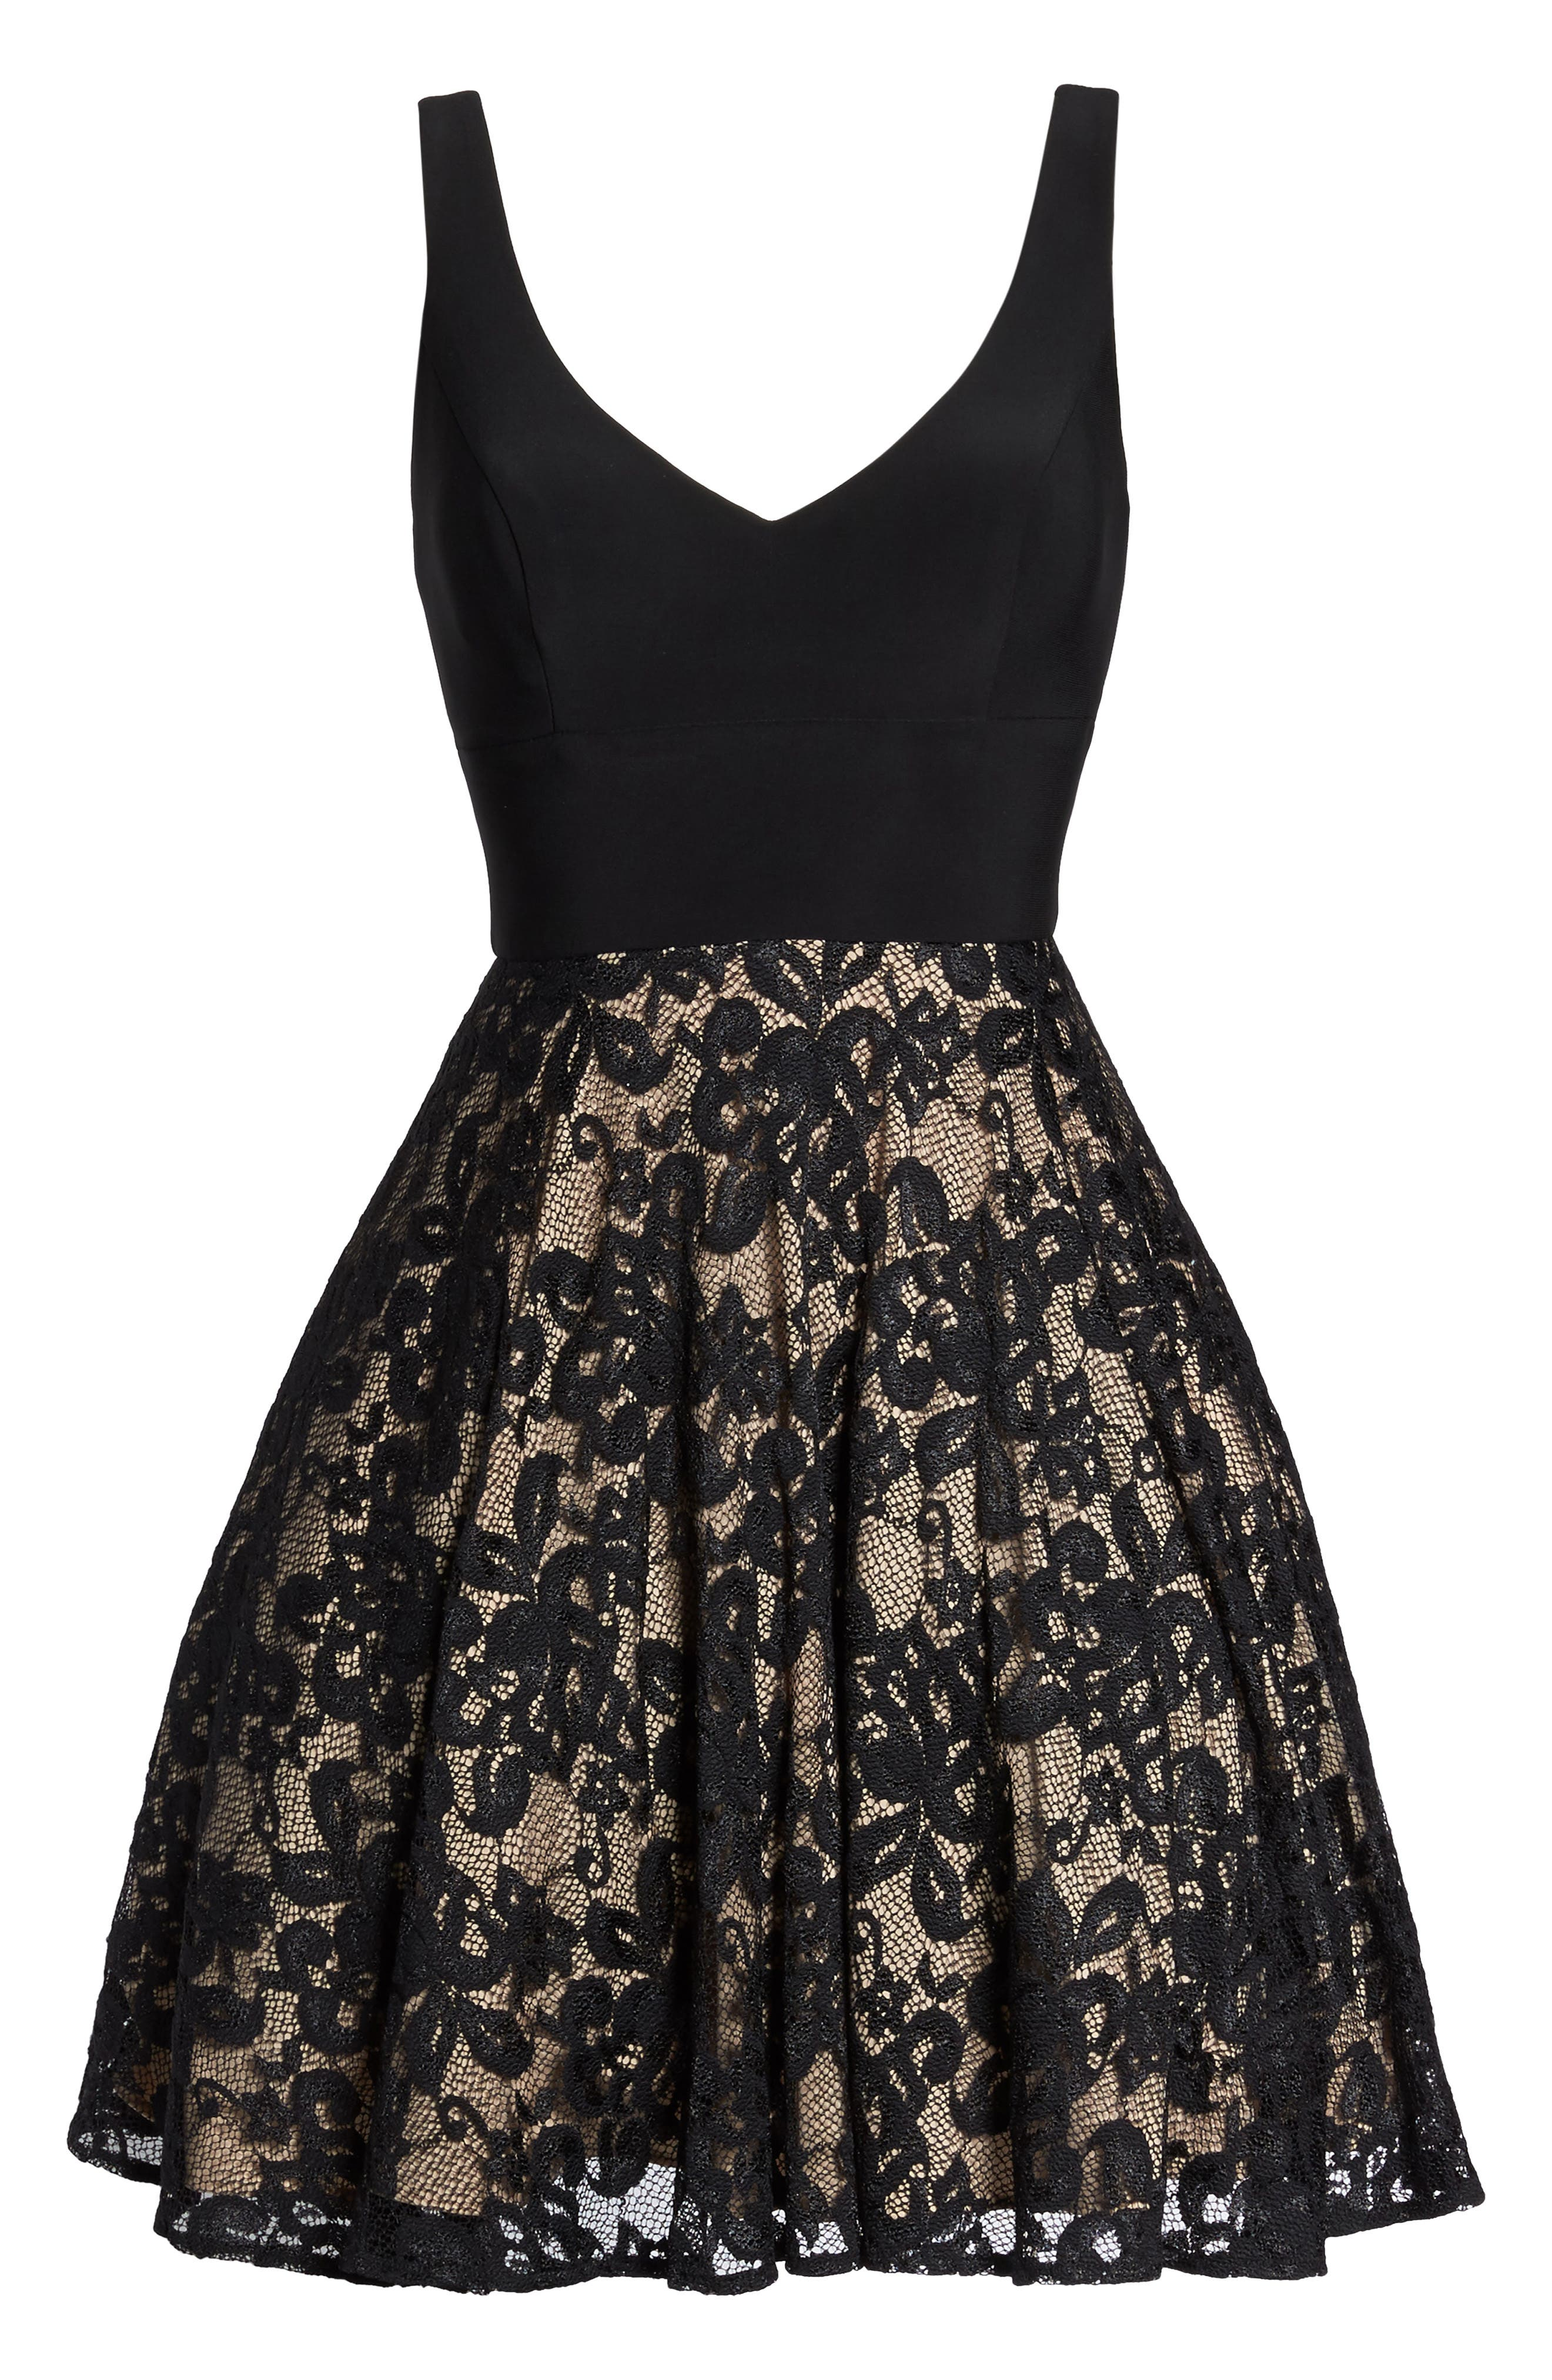 Jersey & Lace Party Dress,                             Alternate thumbnail 6, color,                             Black/ Nude